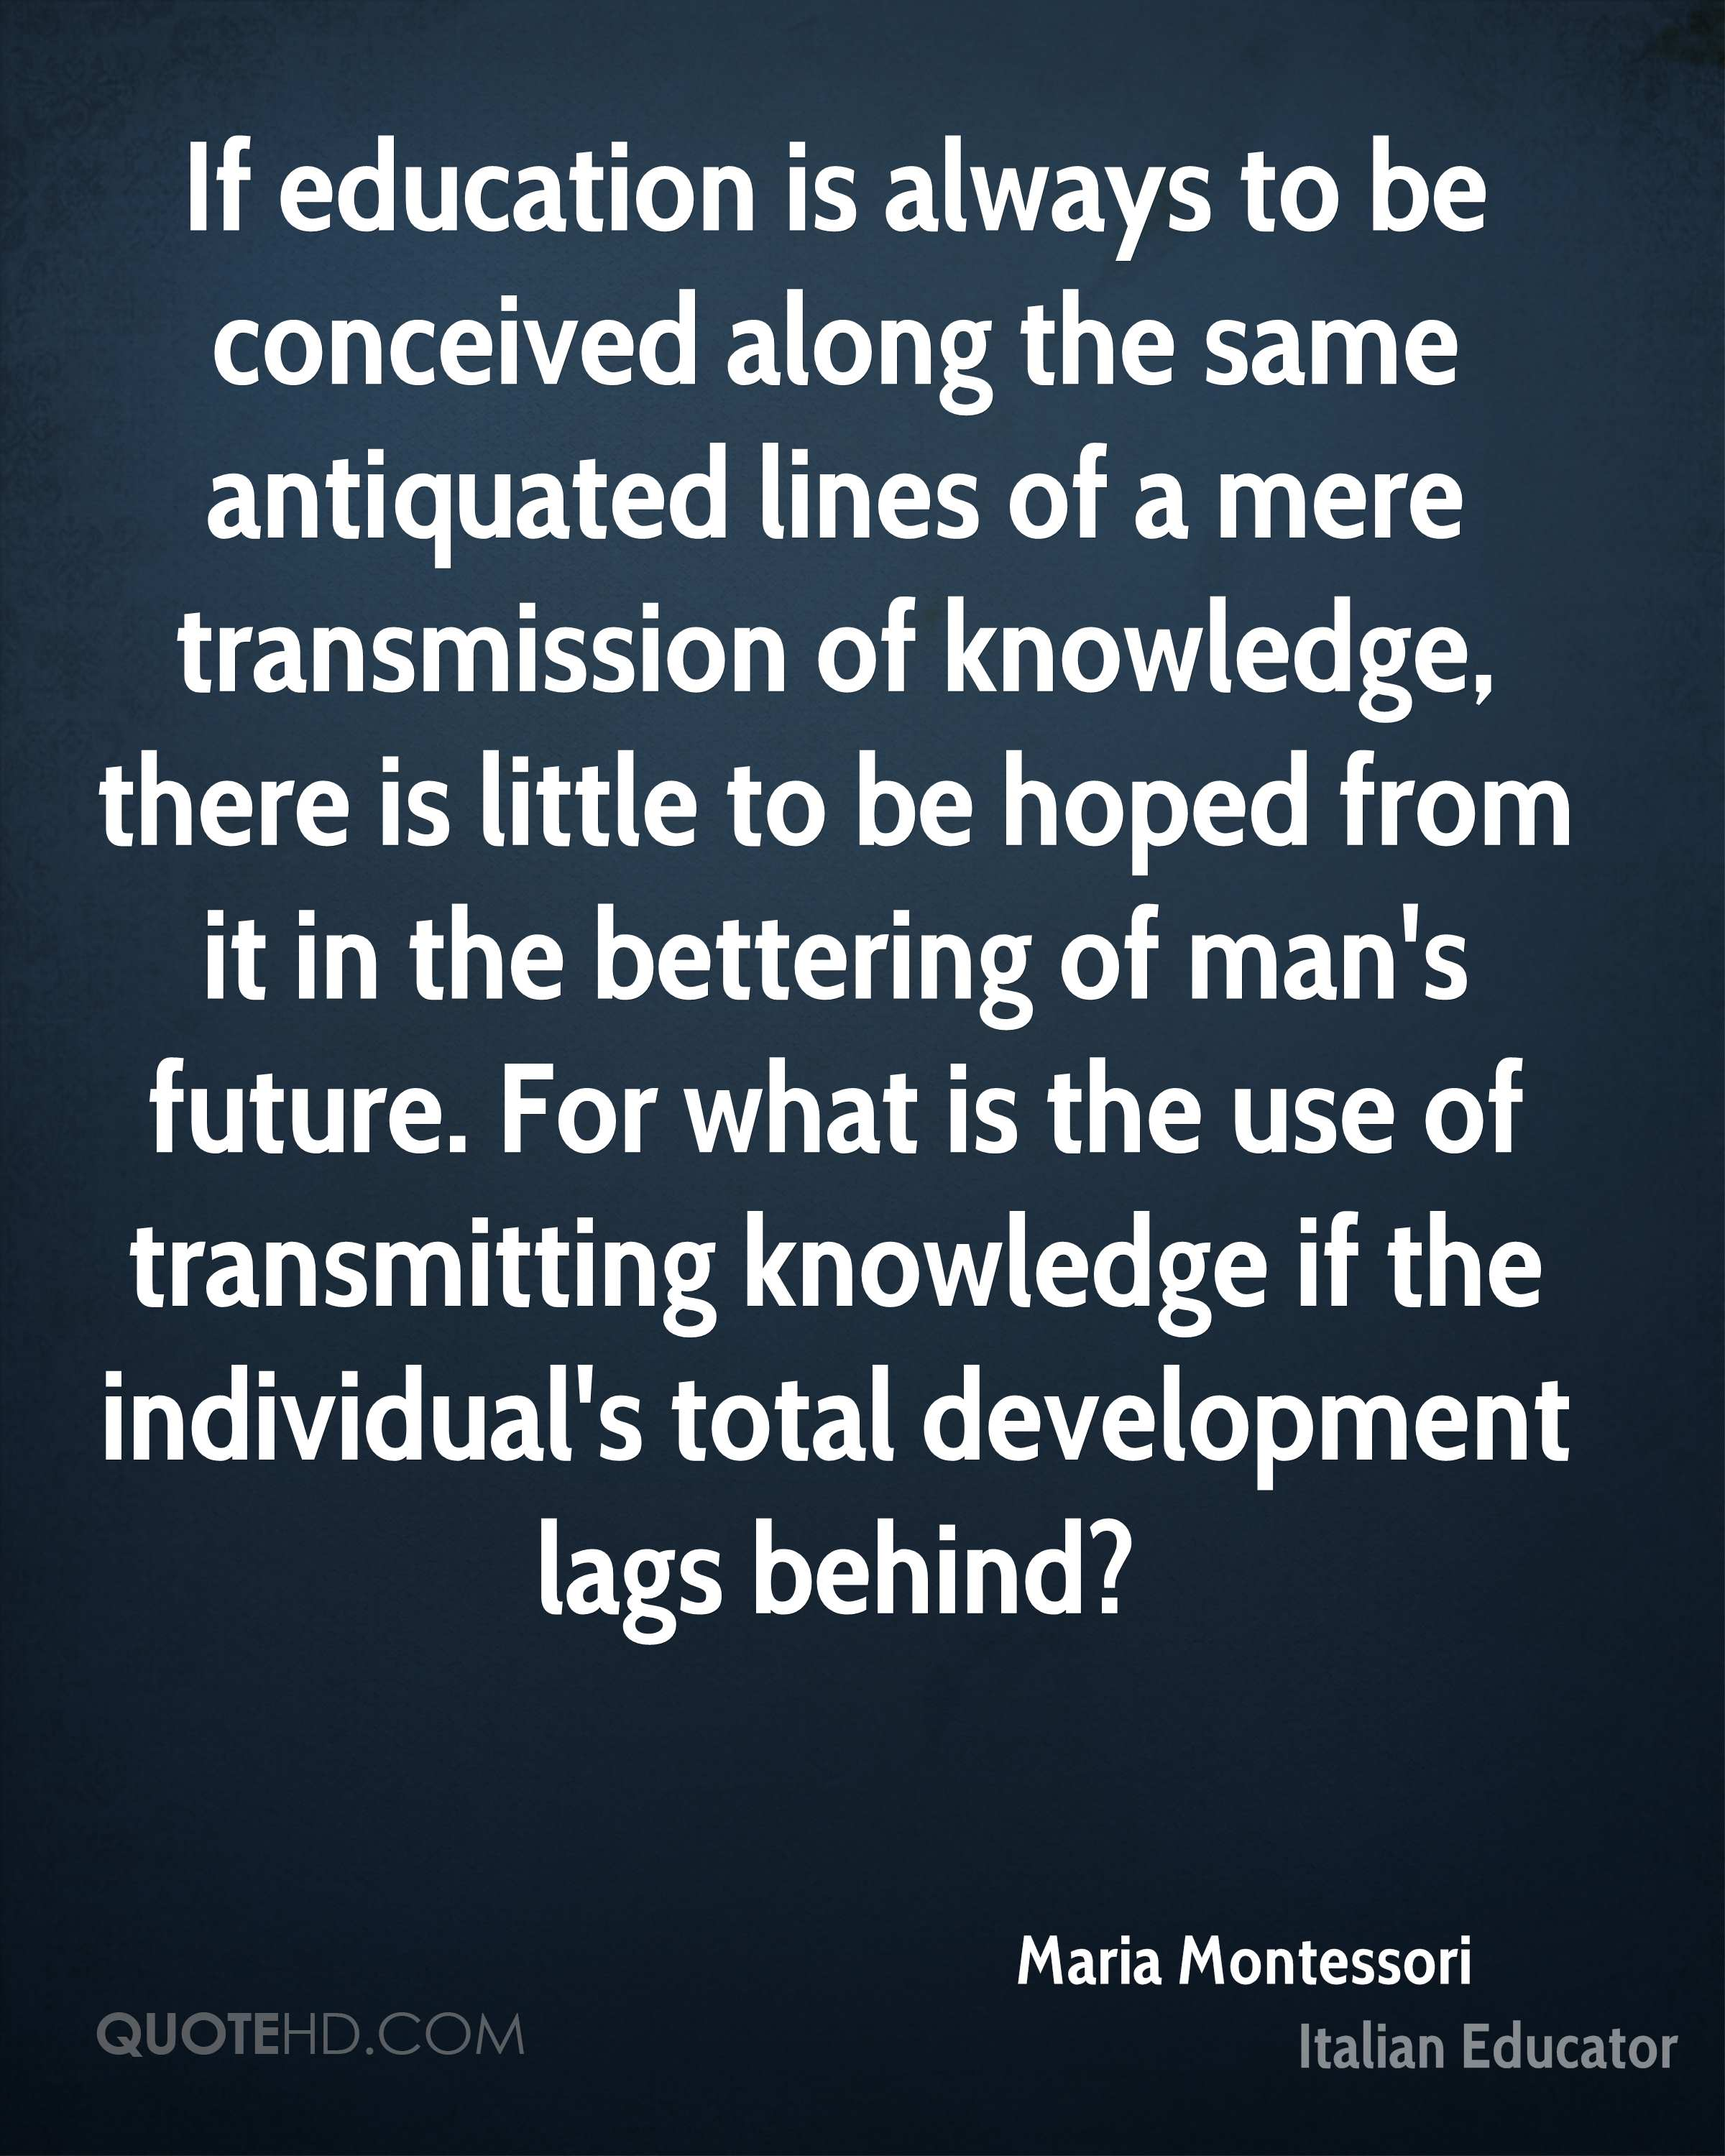 If education is always to be conceived along the same antiquated lines of a mere transmission of knowledge, there is little to be hoped from it in the bettering of man's future. For what is the use of transmitting knowledge if the individual's total development lags behind?